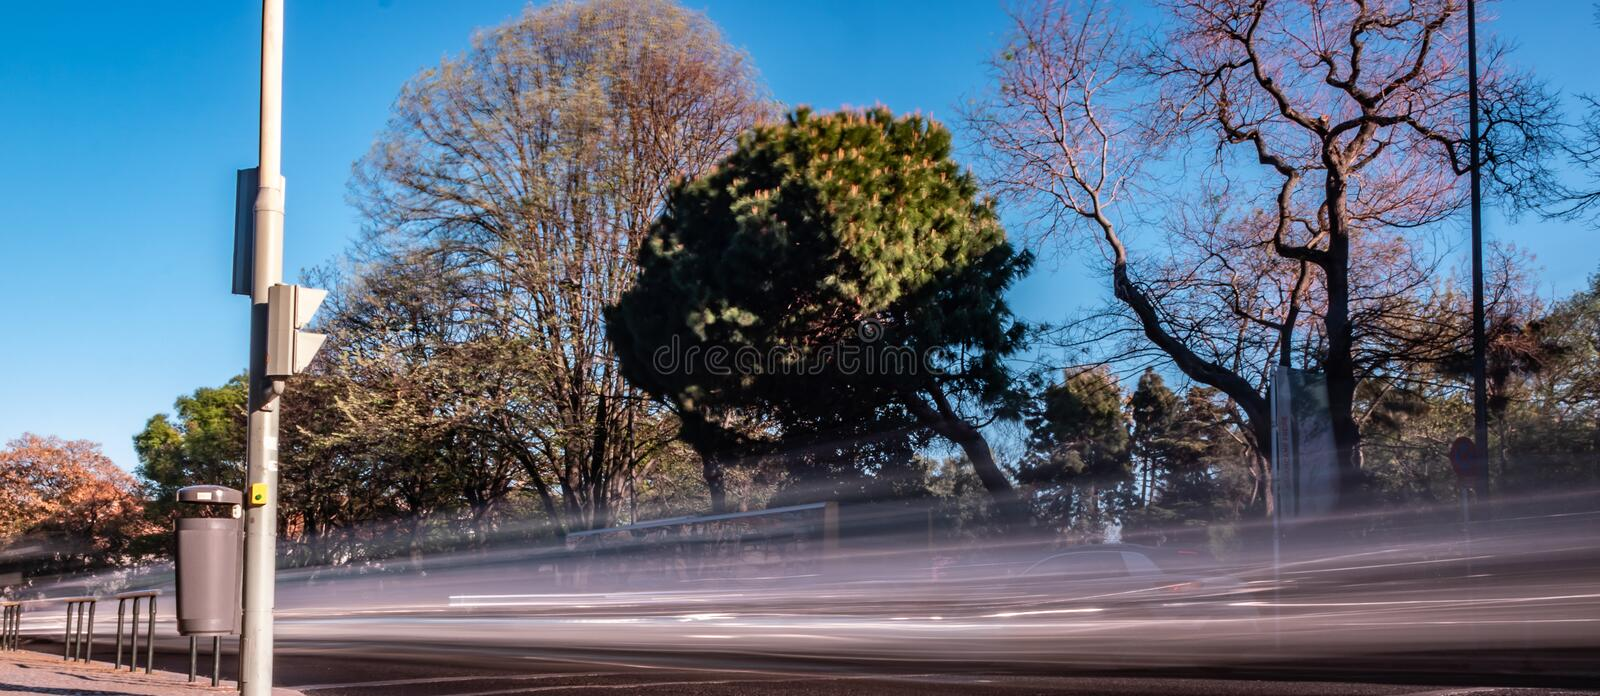 Long exposure photo taken in Lisbon alley with  Beautiful  greenery  and blue sky with  fast moving  cars leaving trail behind stock photography